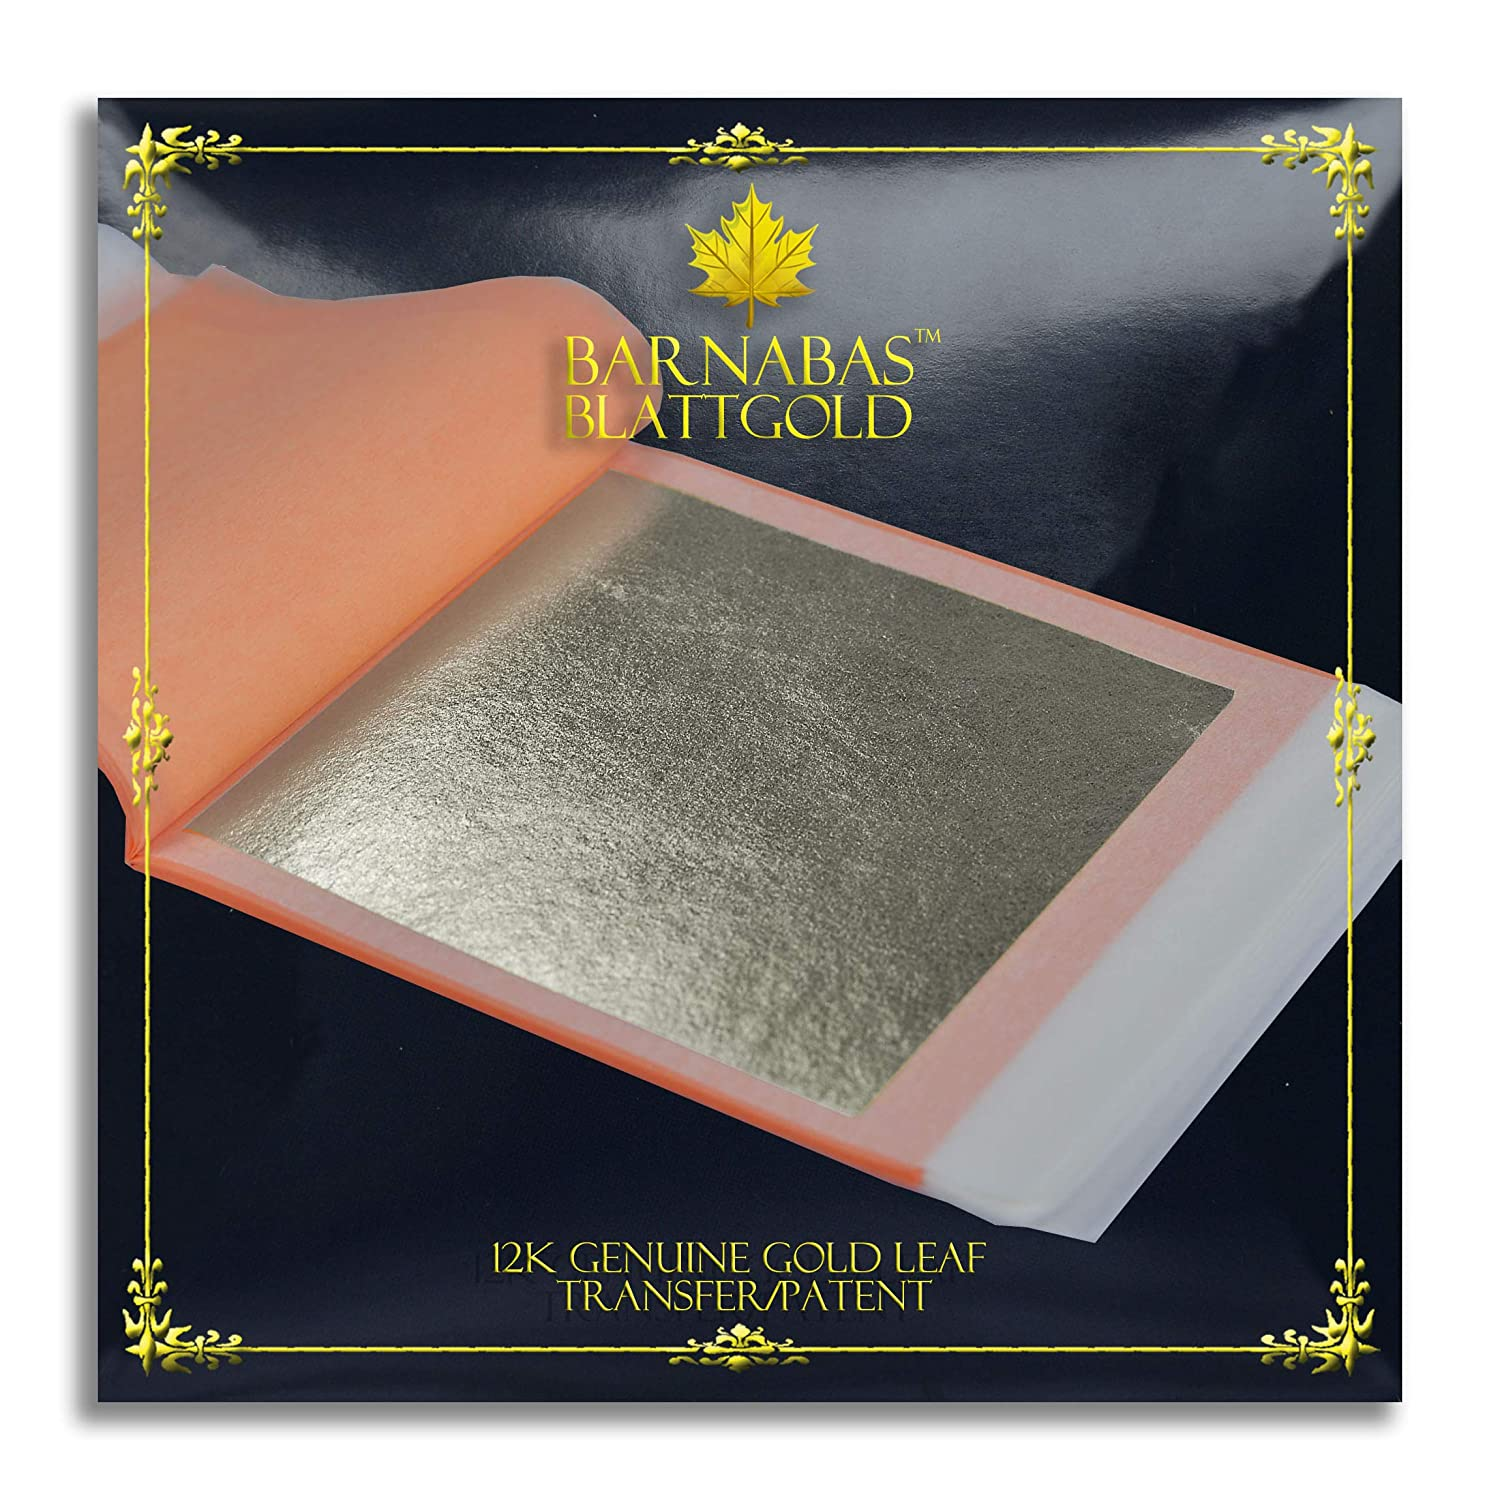 Genuine Gold Leaf Sheets 12k - by Barnabas Blattgold - 3.4 inches - 25 Sheets Booklet - Loose Leaf G85-12-25